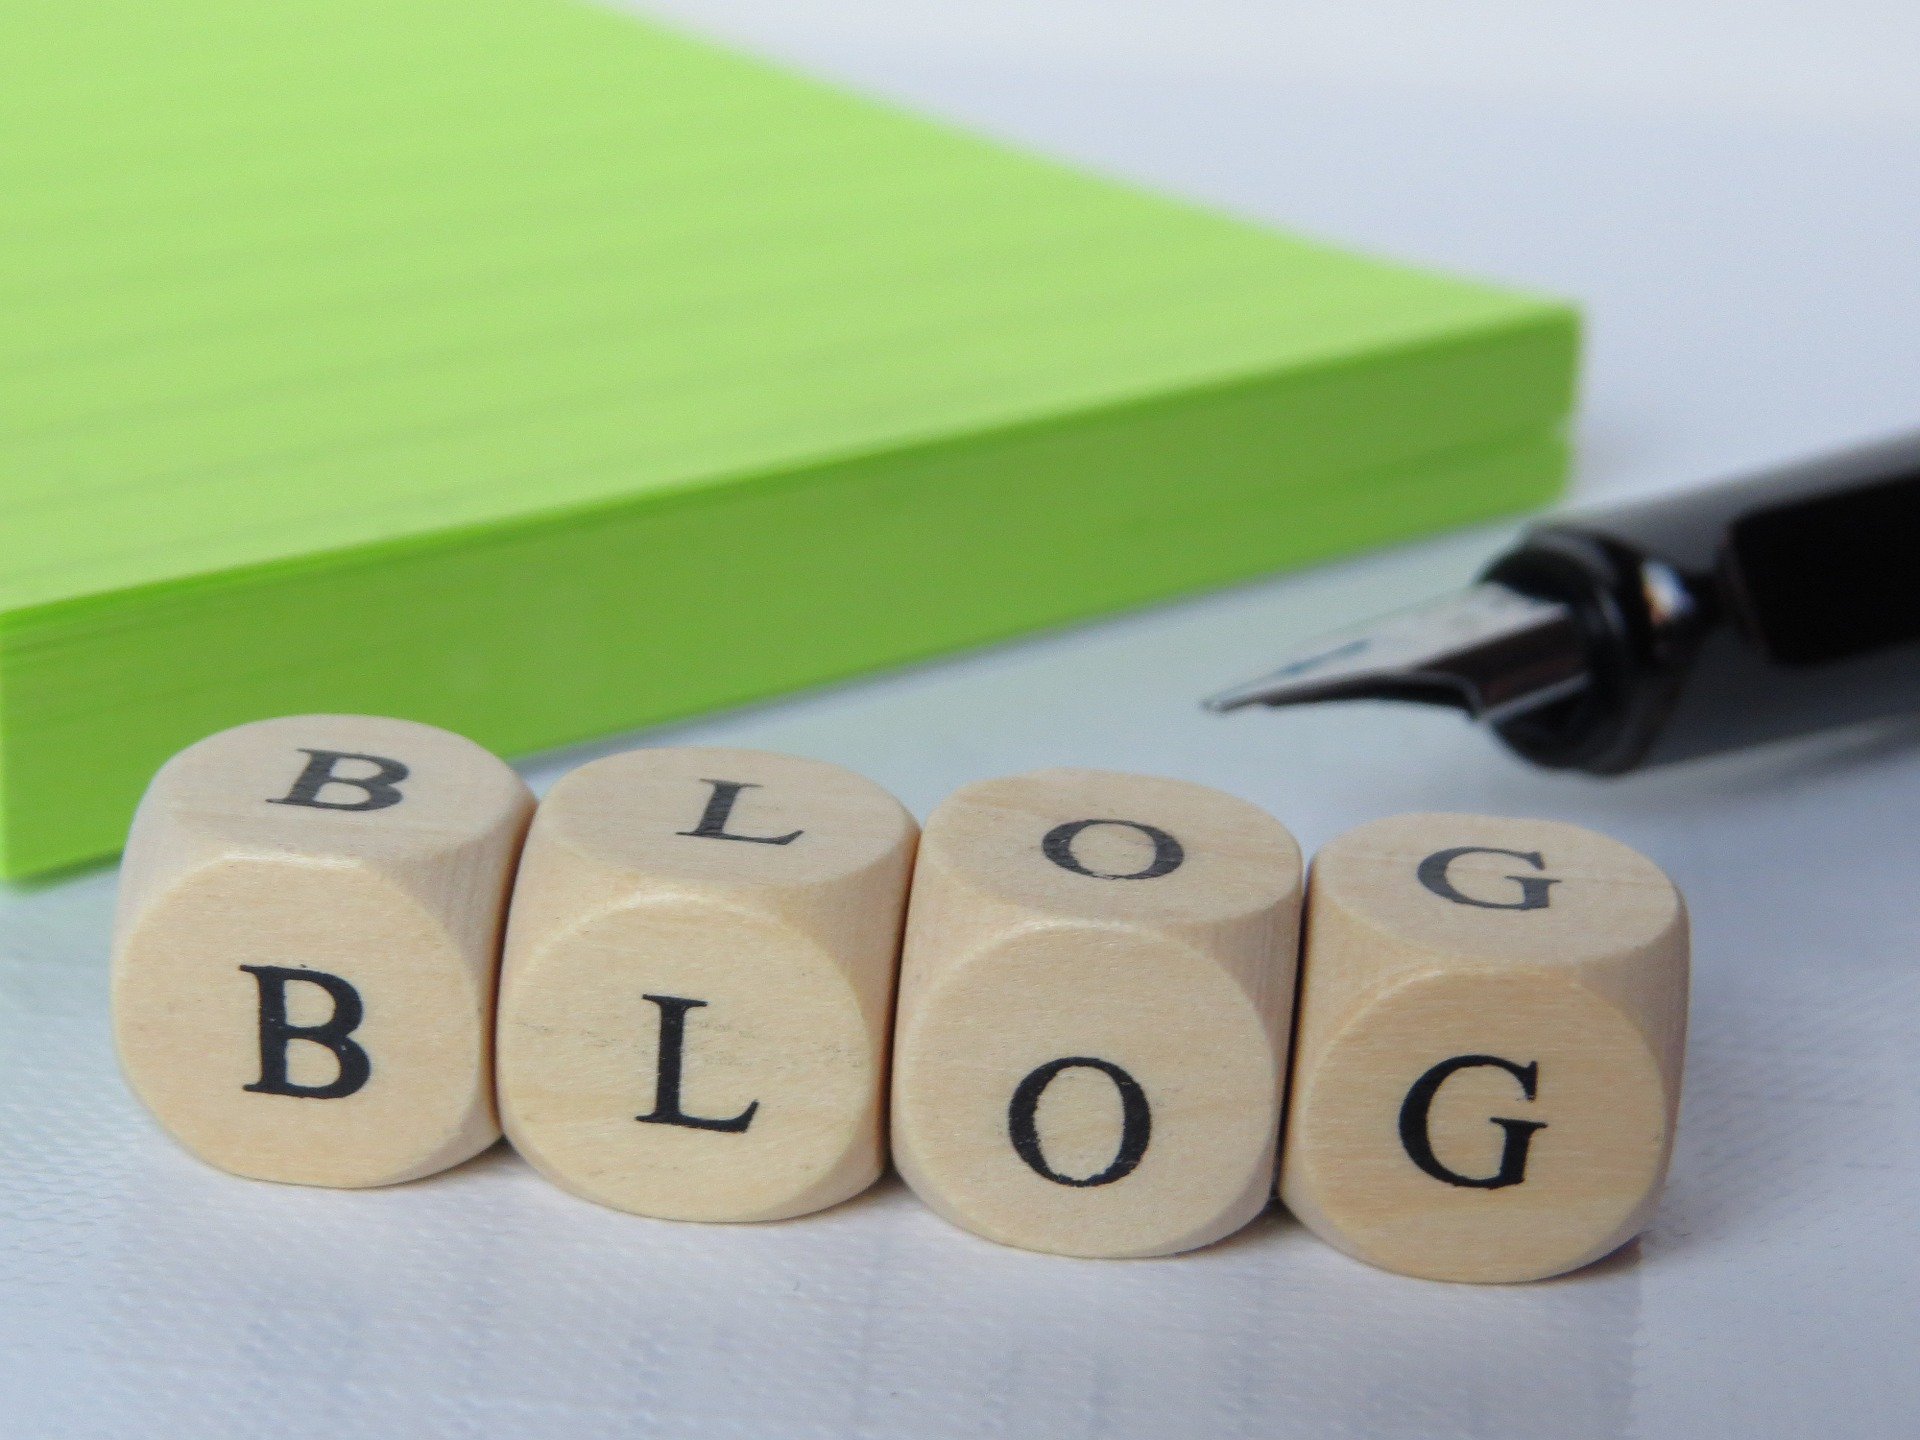 Reports of the death of blogging have been greatly exaggerated. Here's why a company blog is a critical piece of any solid content marketing effort.